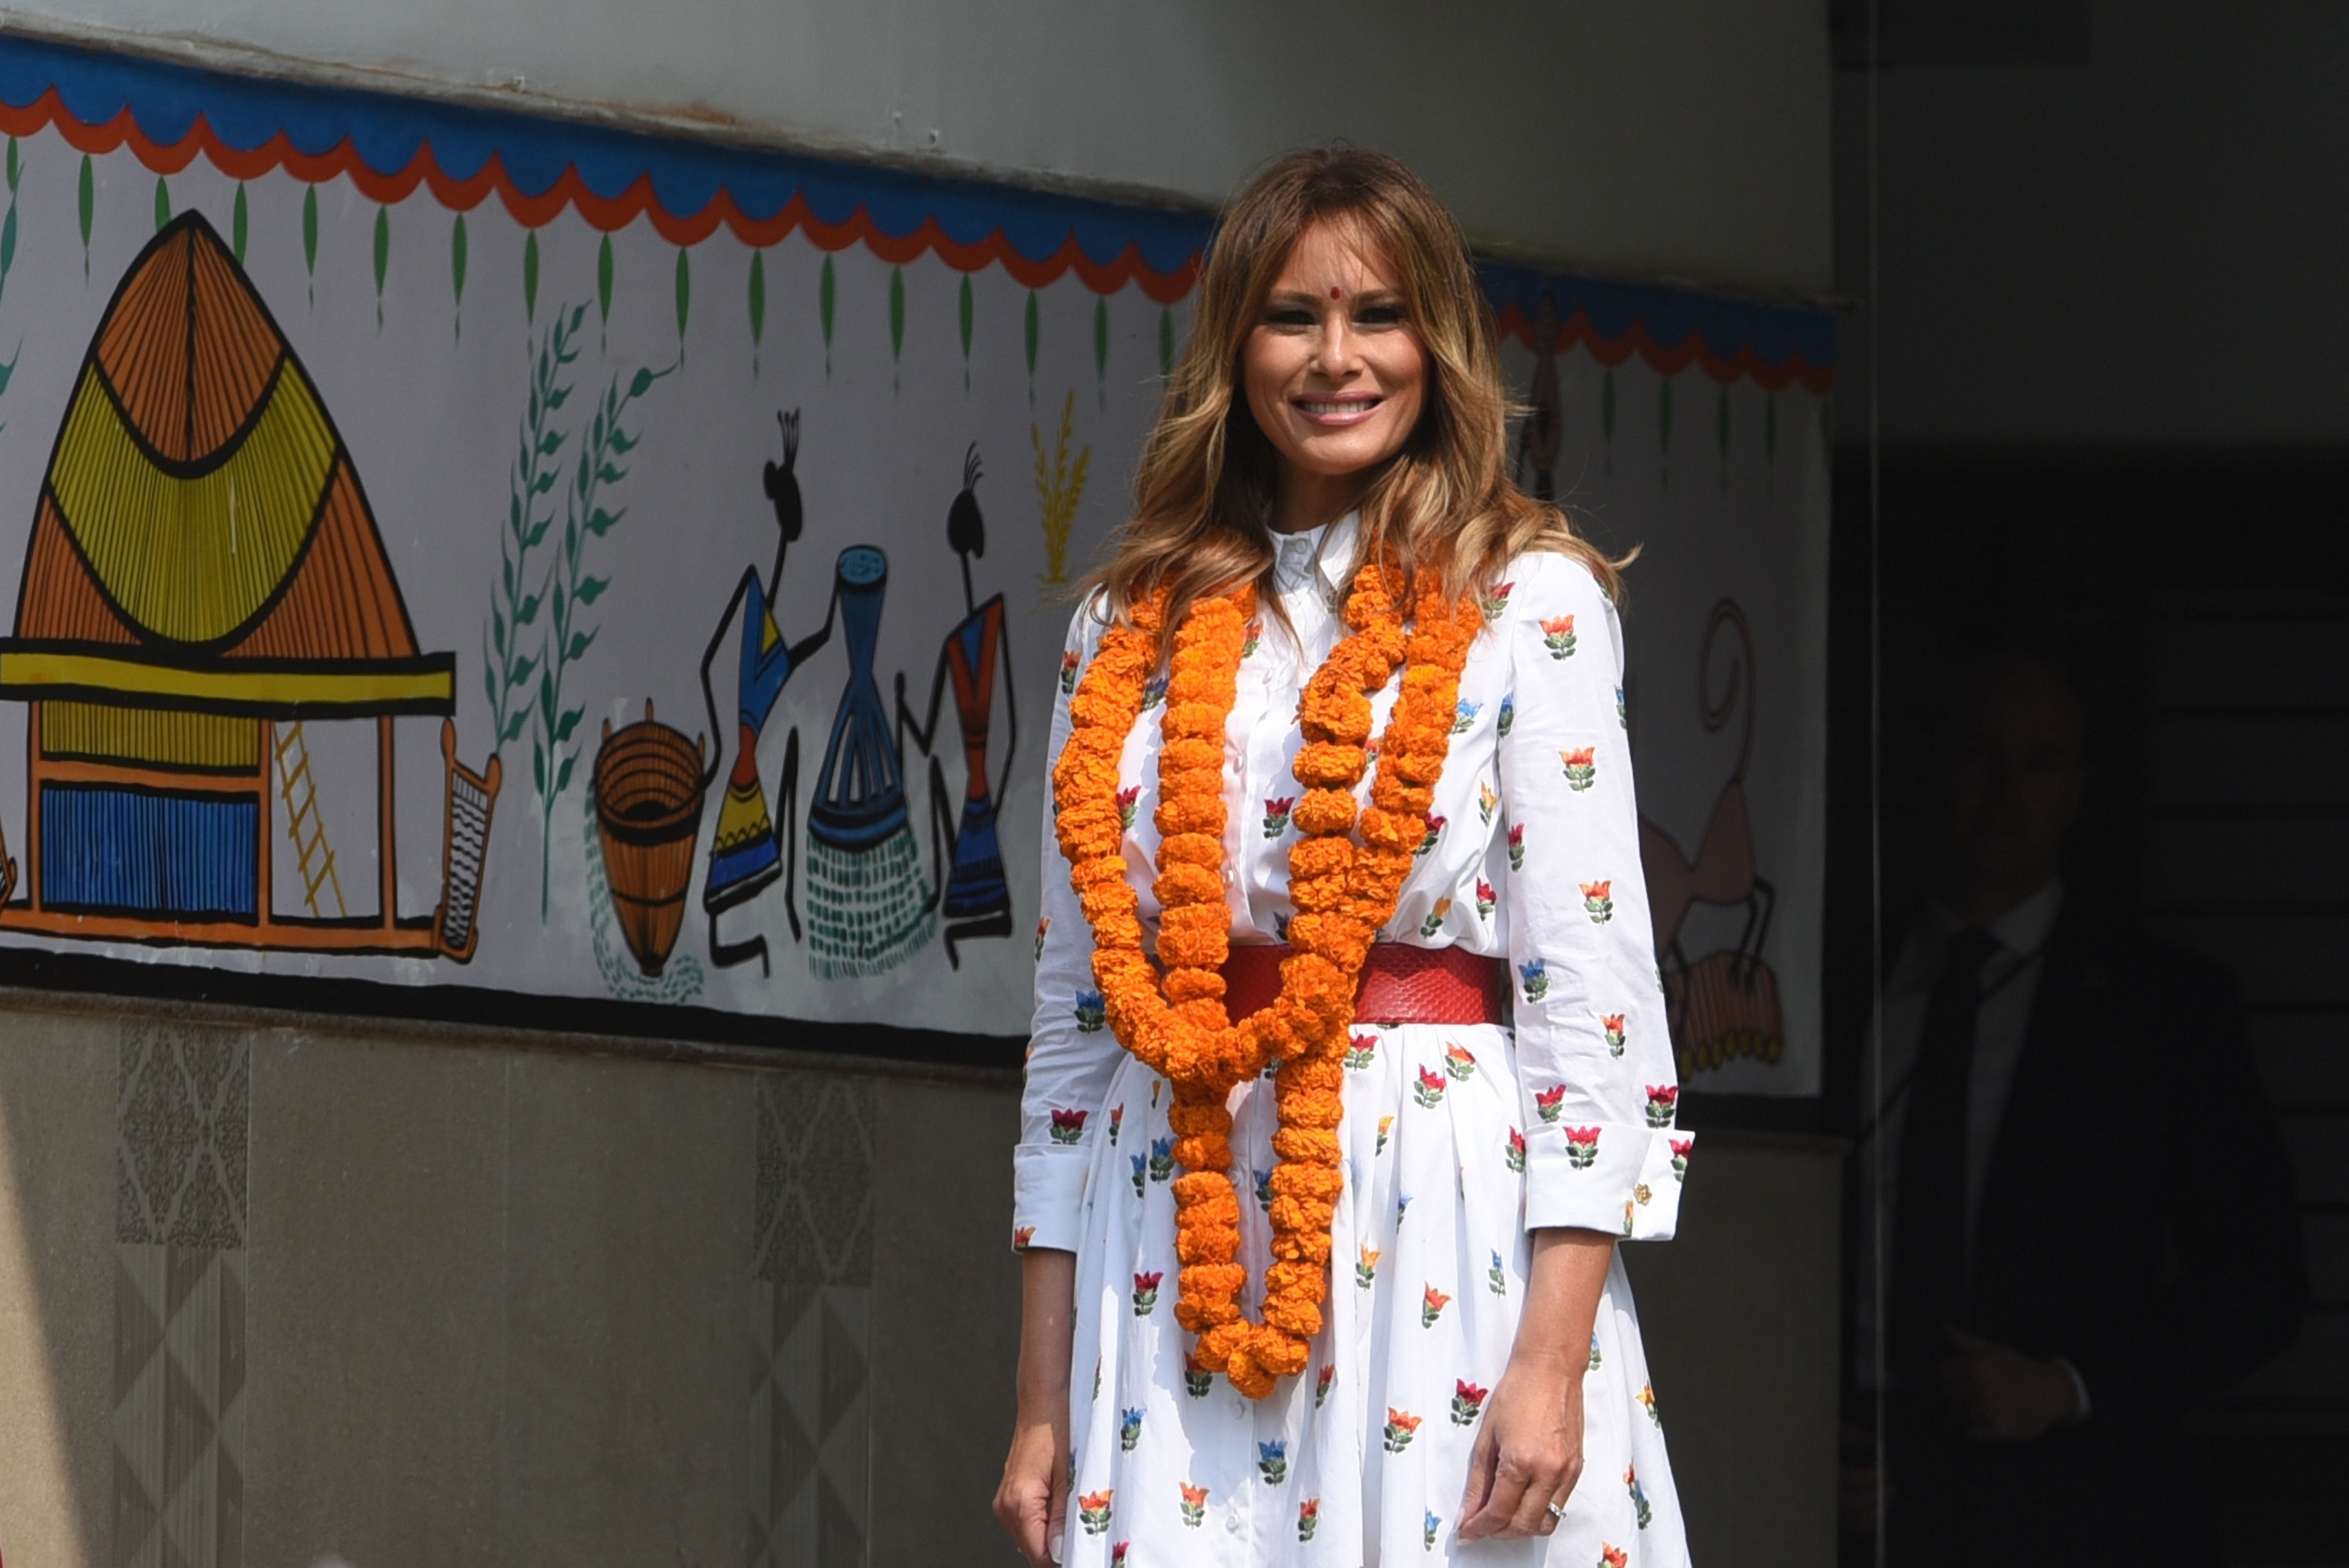 Melania Trump during a visit to a Delhi Government School, at Moti Bagh on February 25, 2020, in New Delhi, India. | Source: Getty Images.